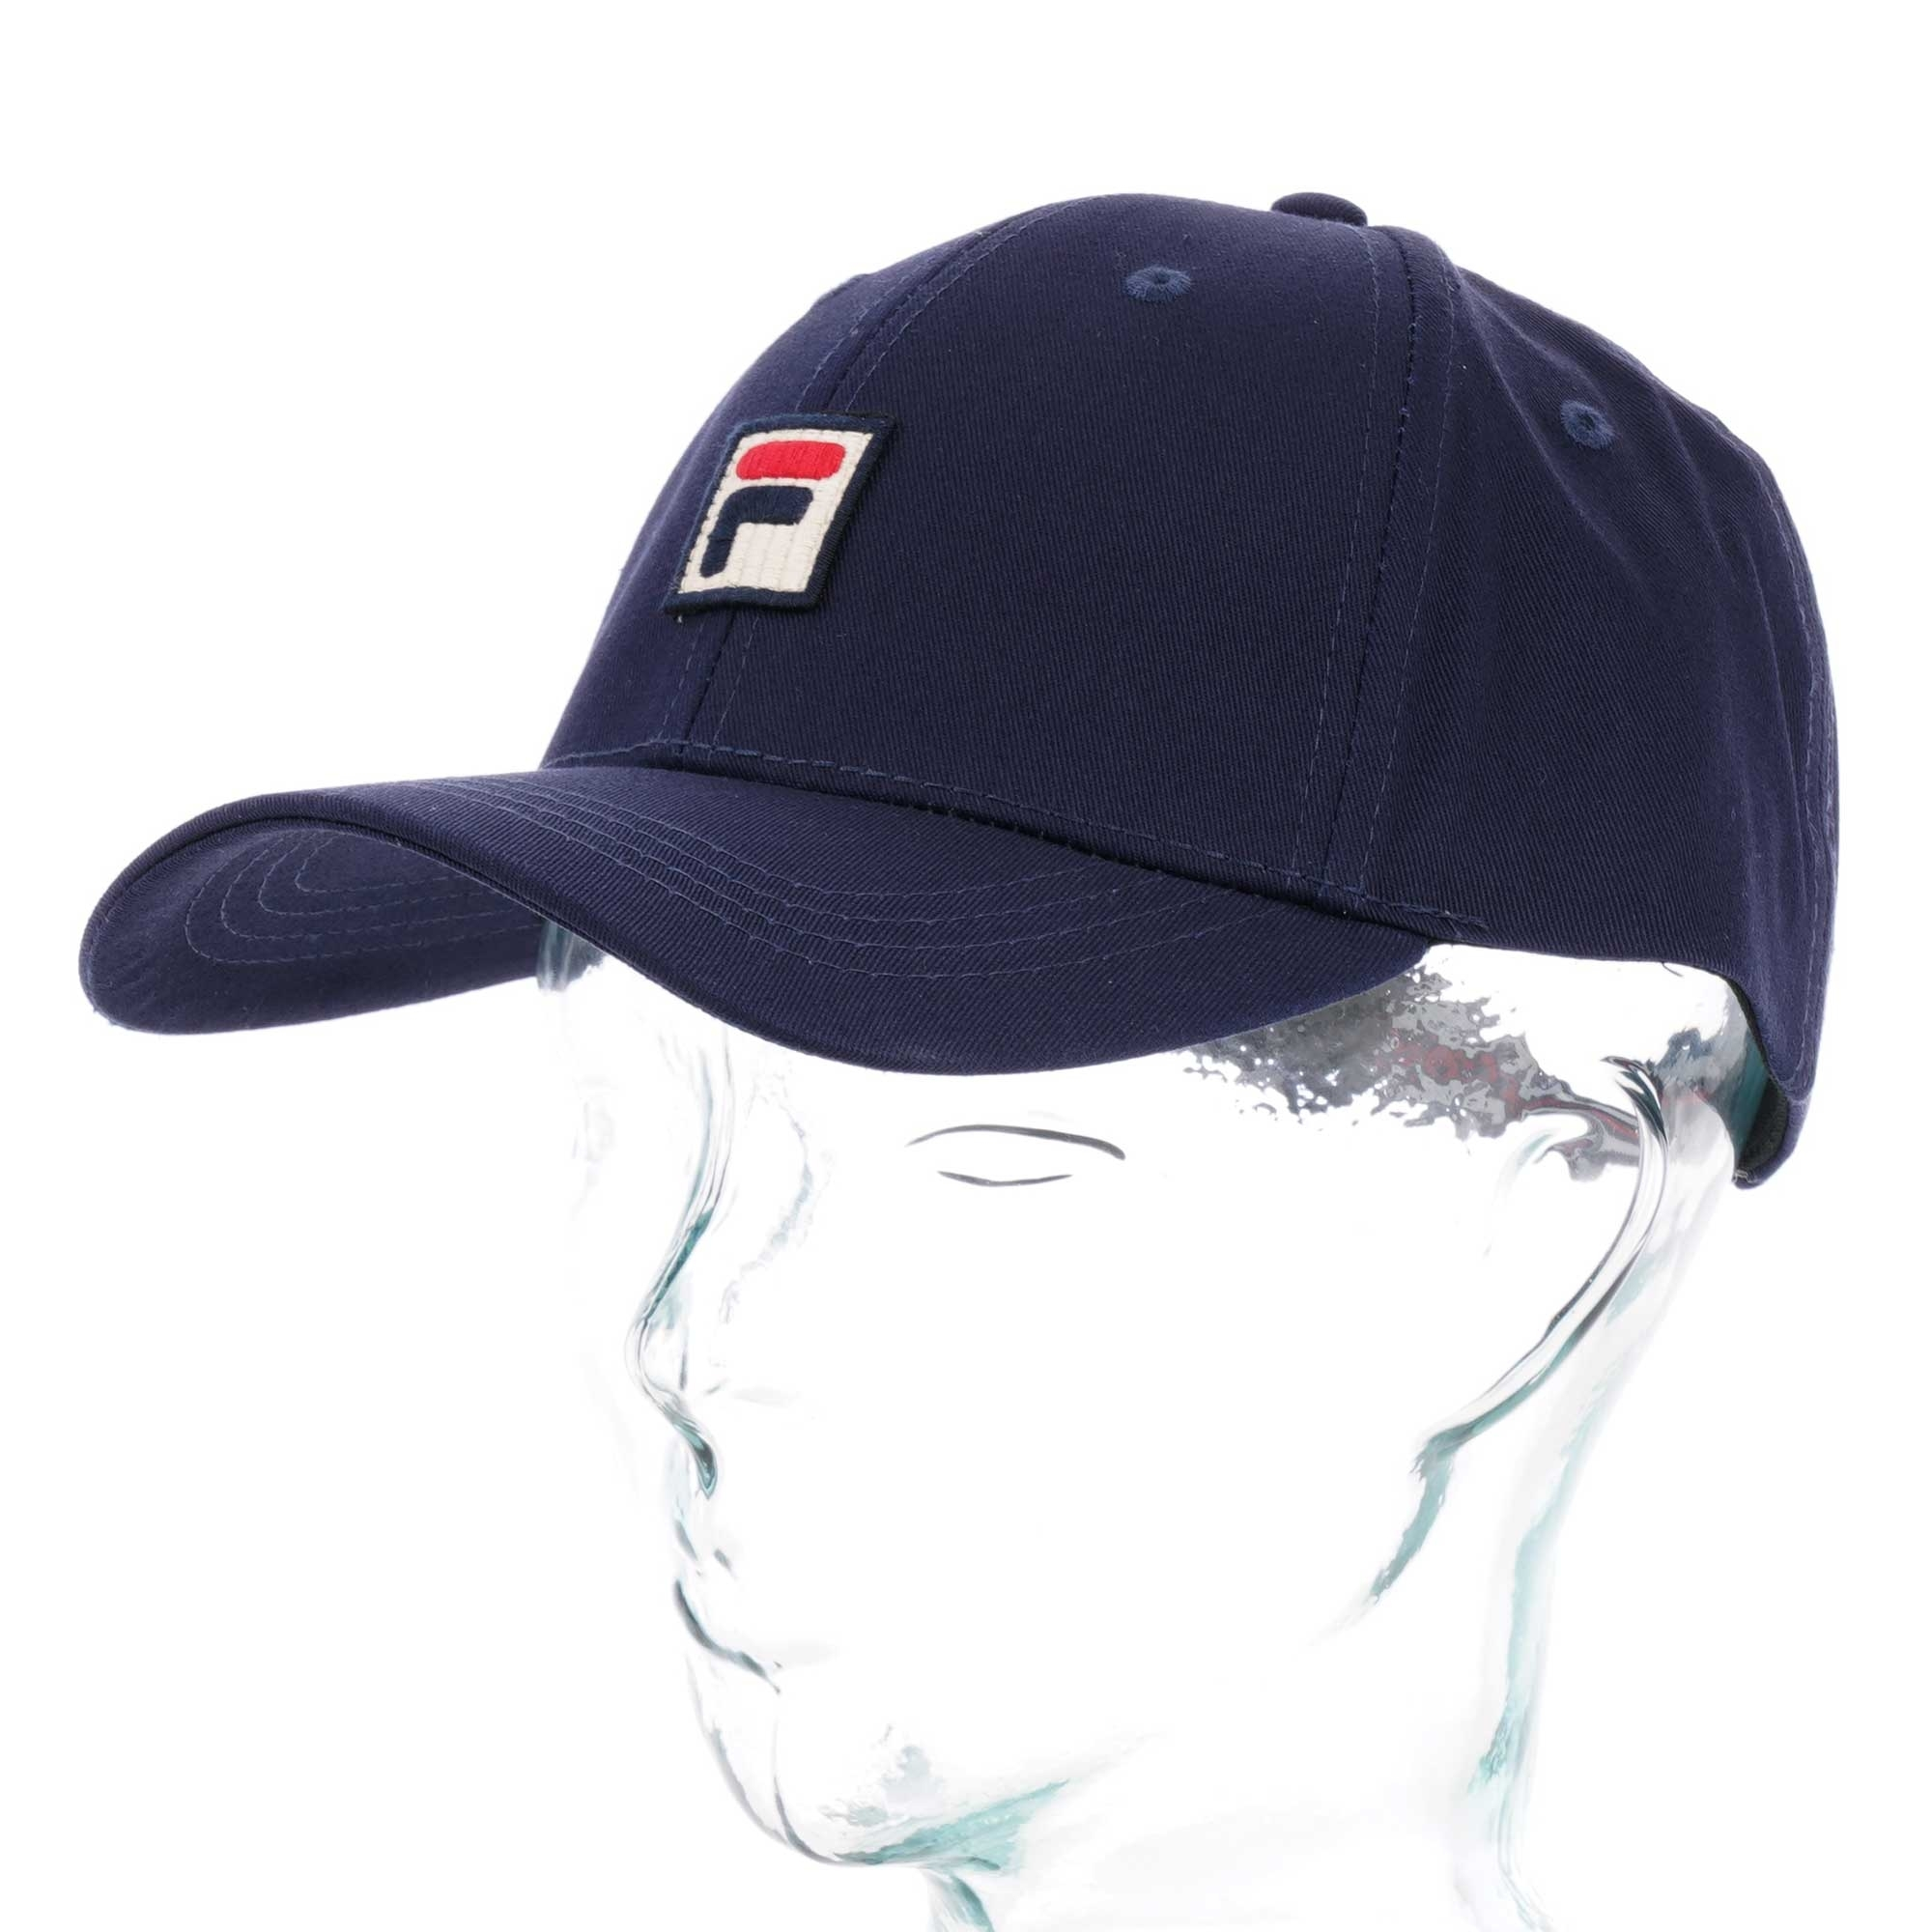 e9ebc1cae Tour Baseball Cap - Peacoat & White